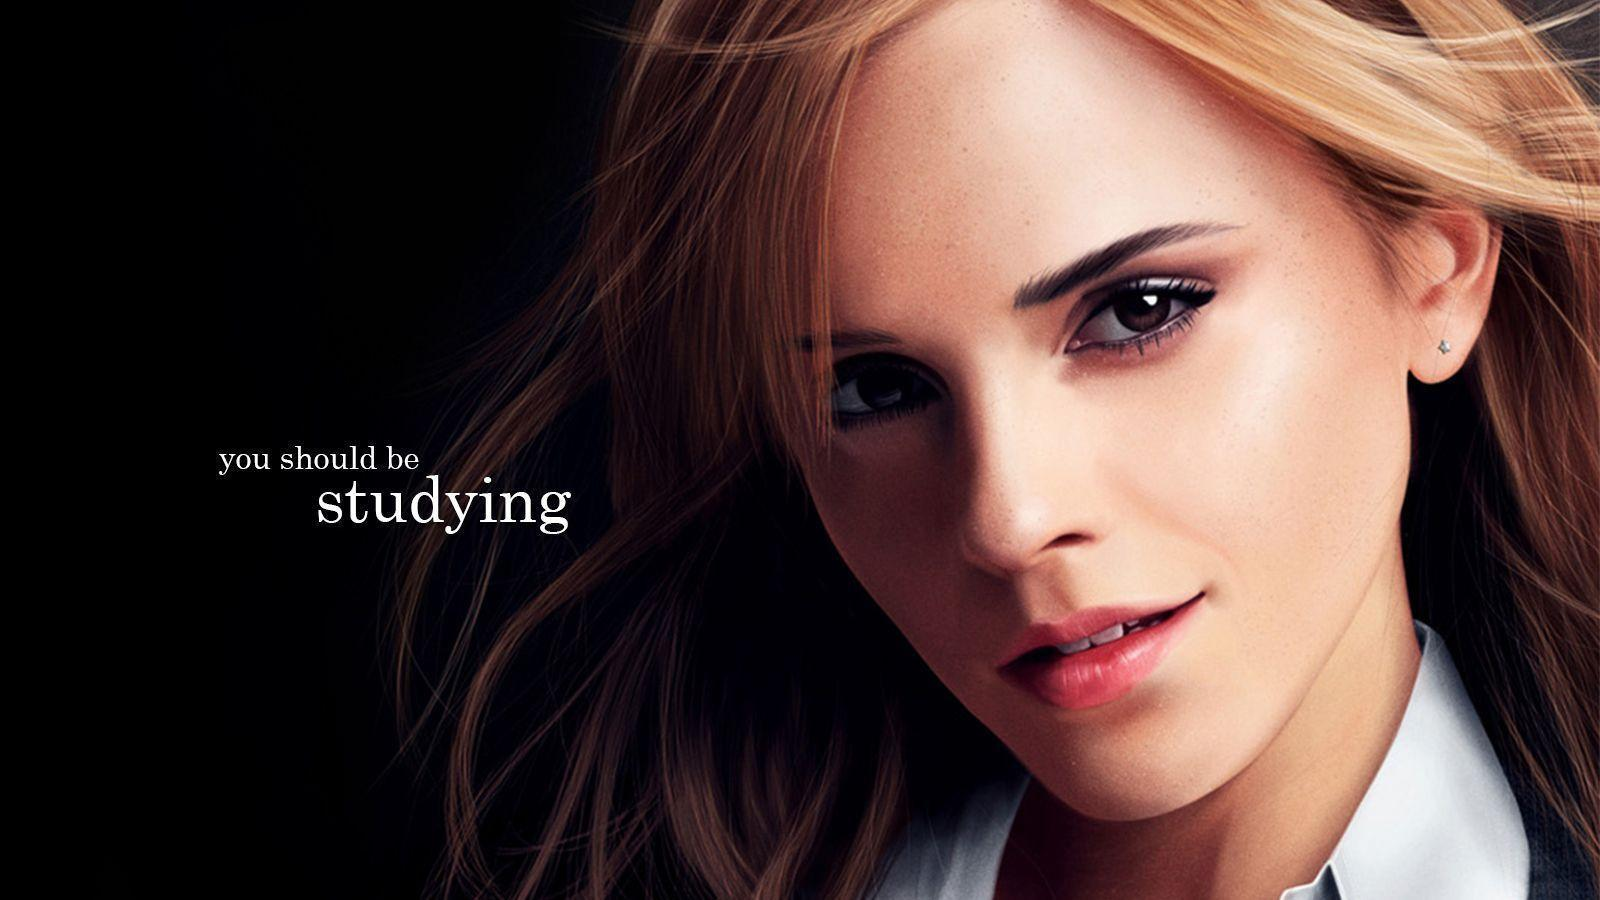 Emma Watson HD Wallpapers - HD Wallpapers of Emma Watson - Page 1 ...